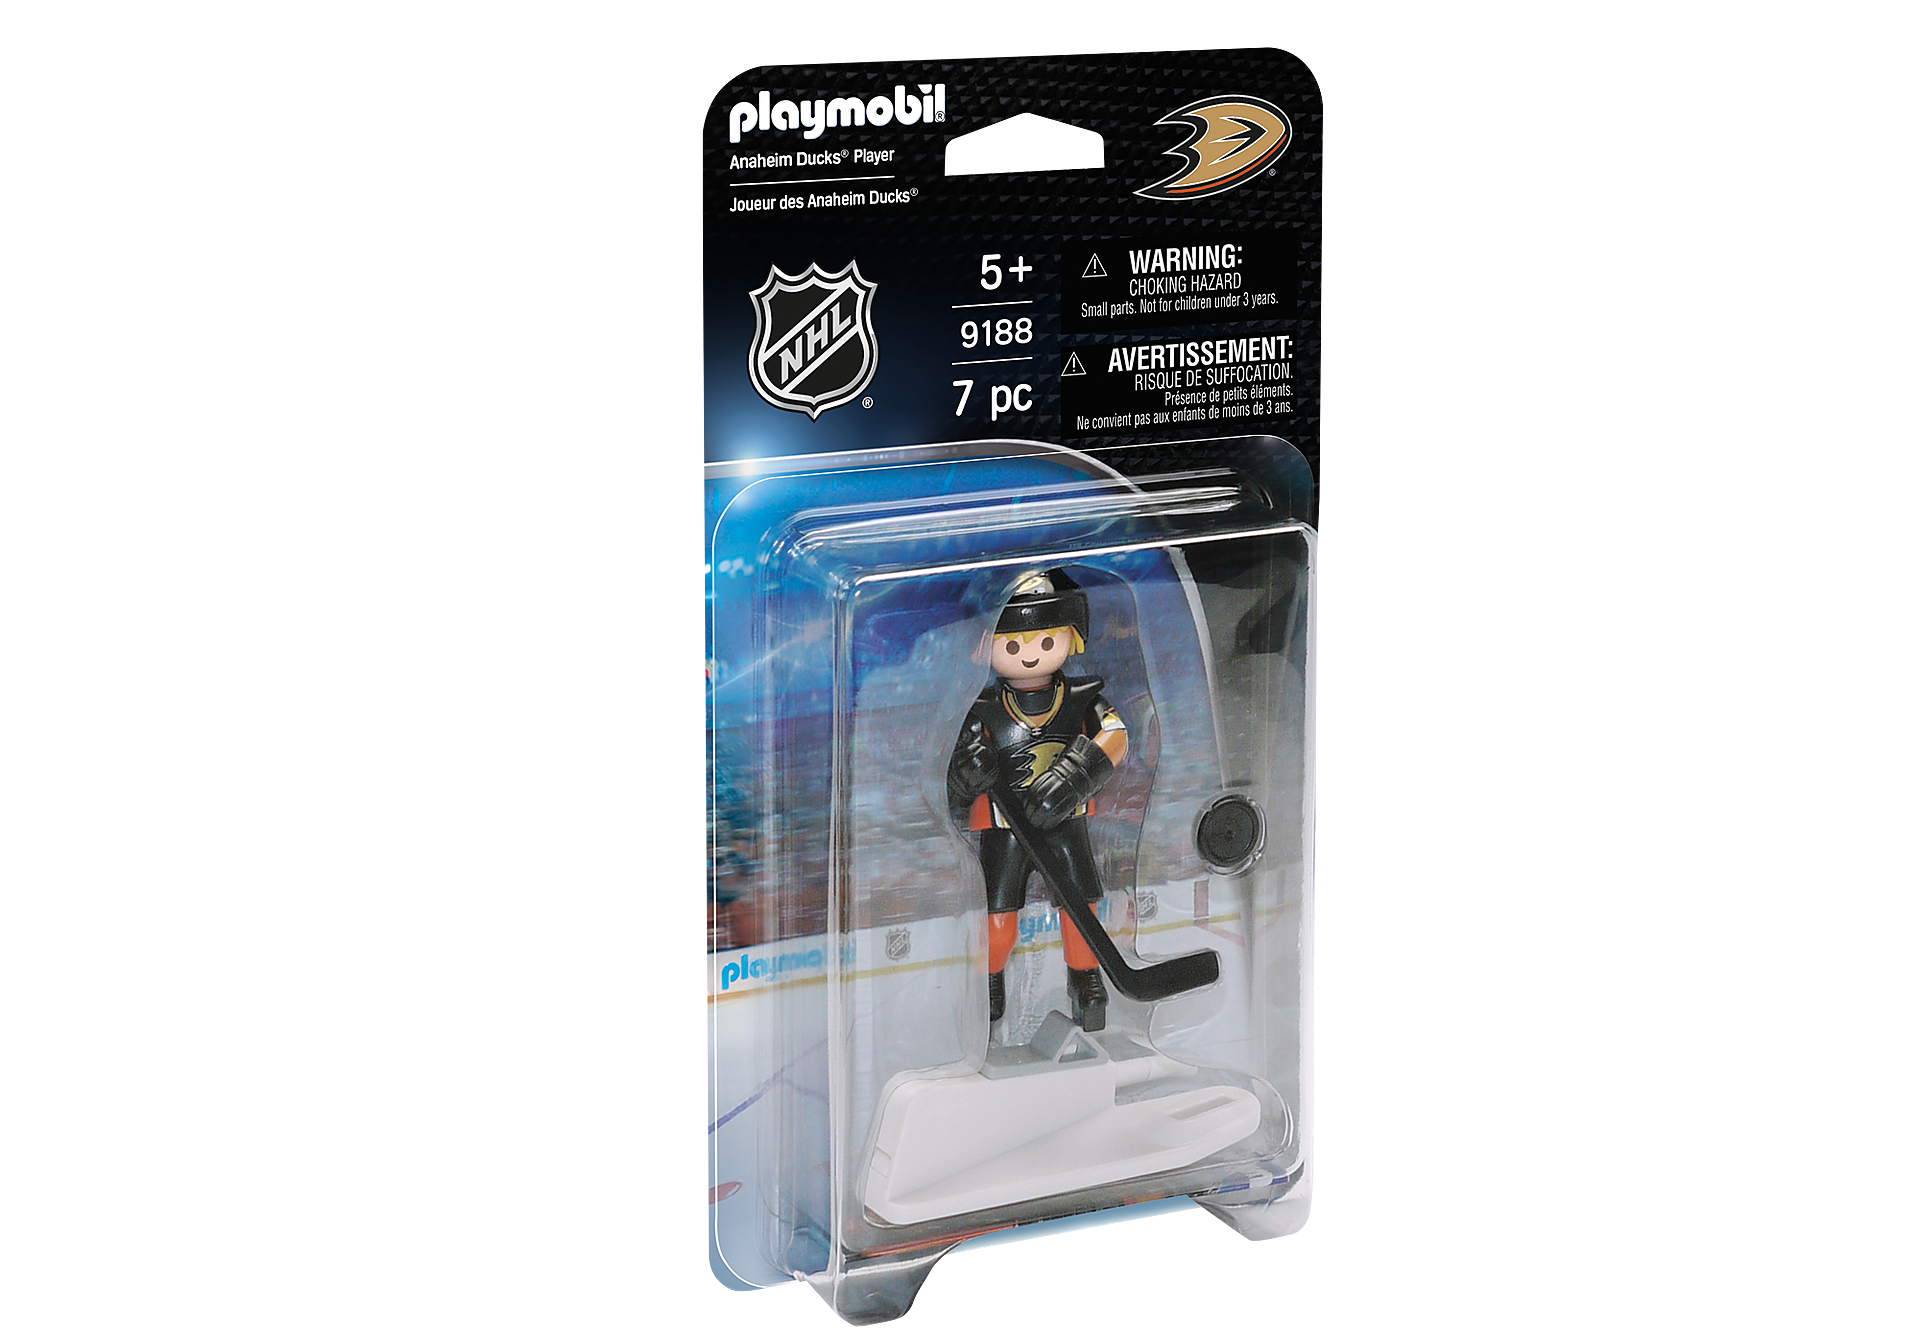 9188 NHL™ Anaheim Ducks™Player zoom image2